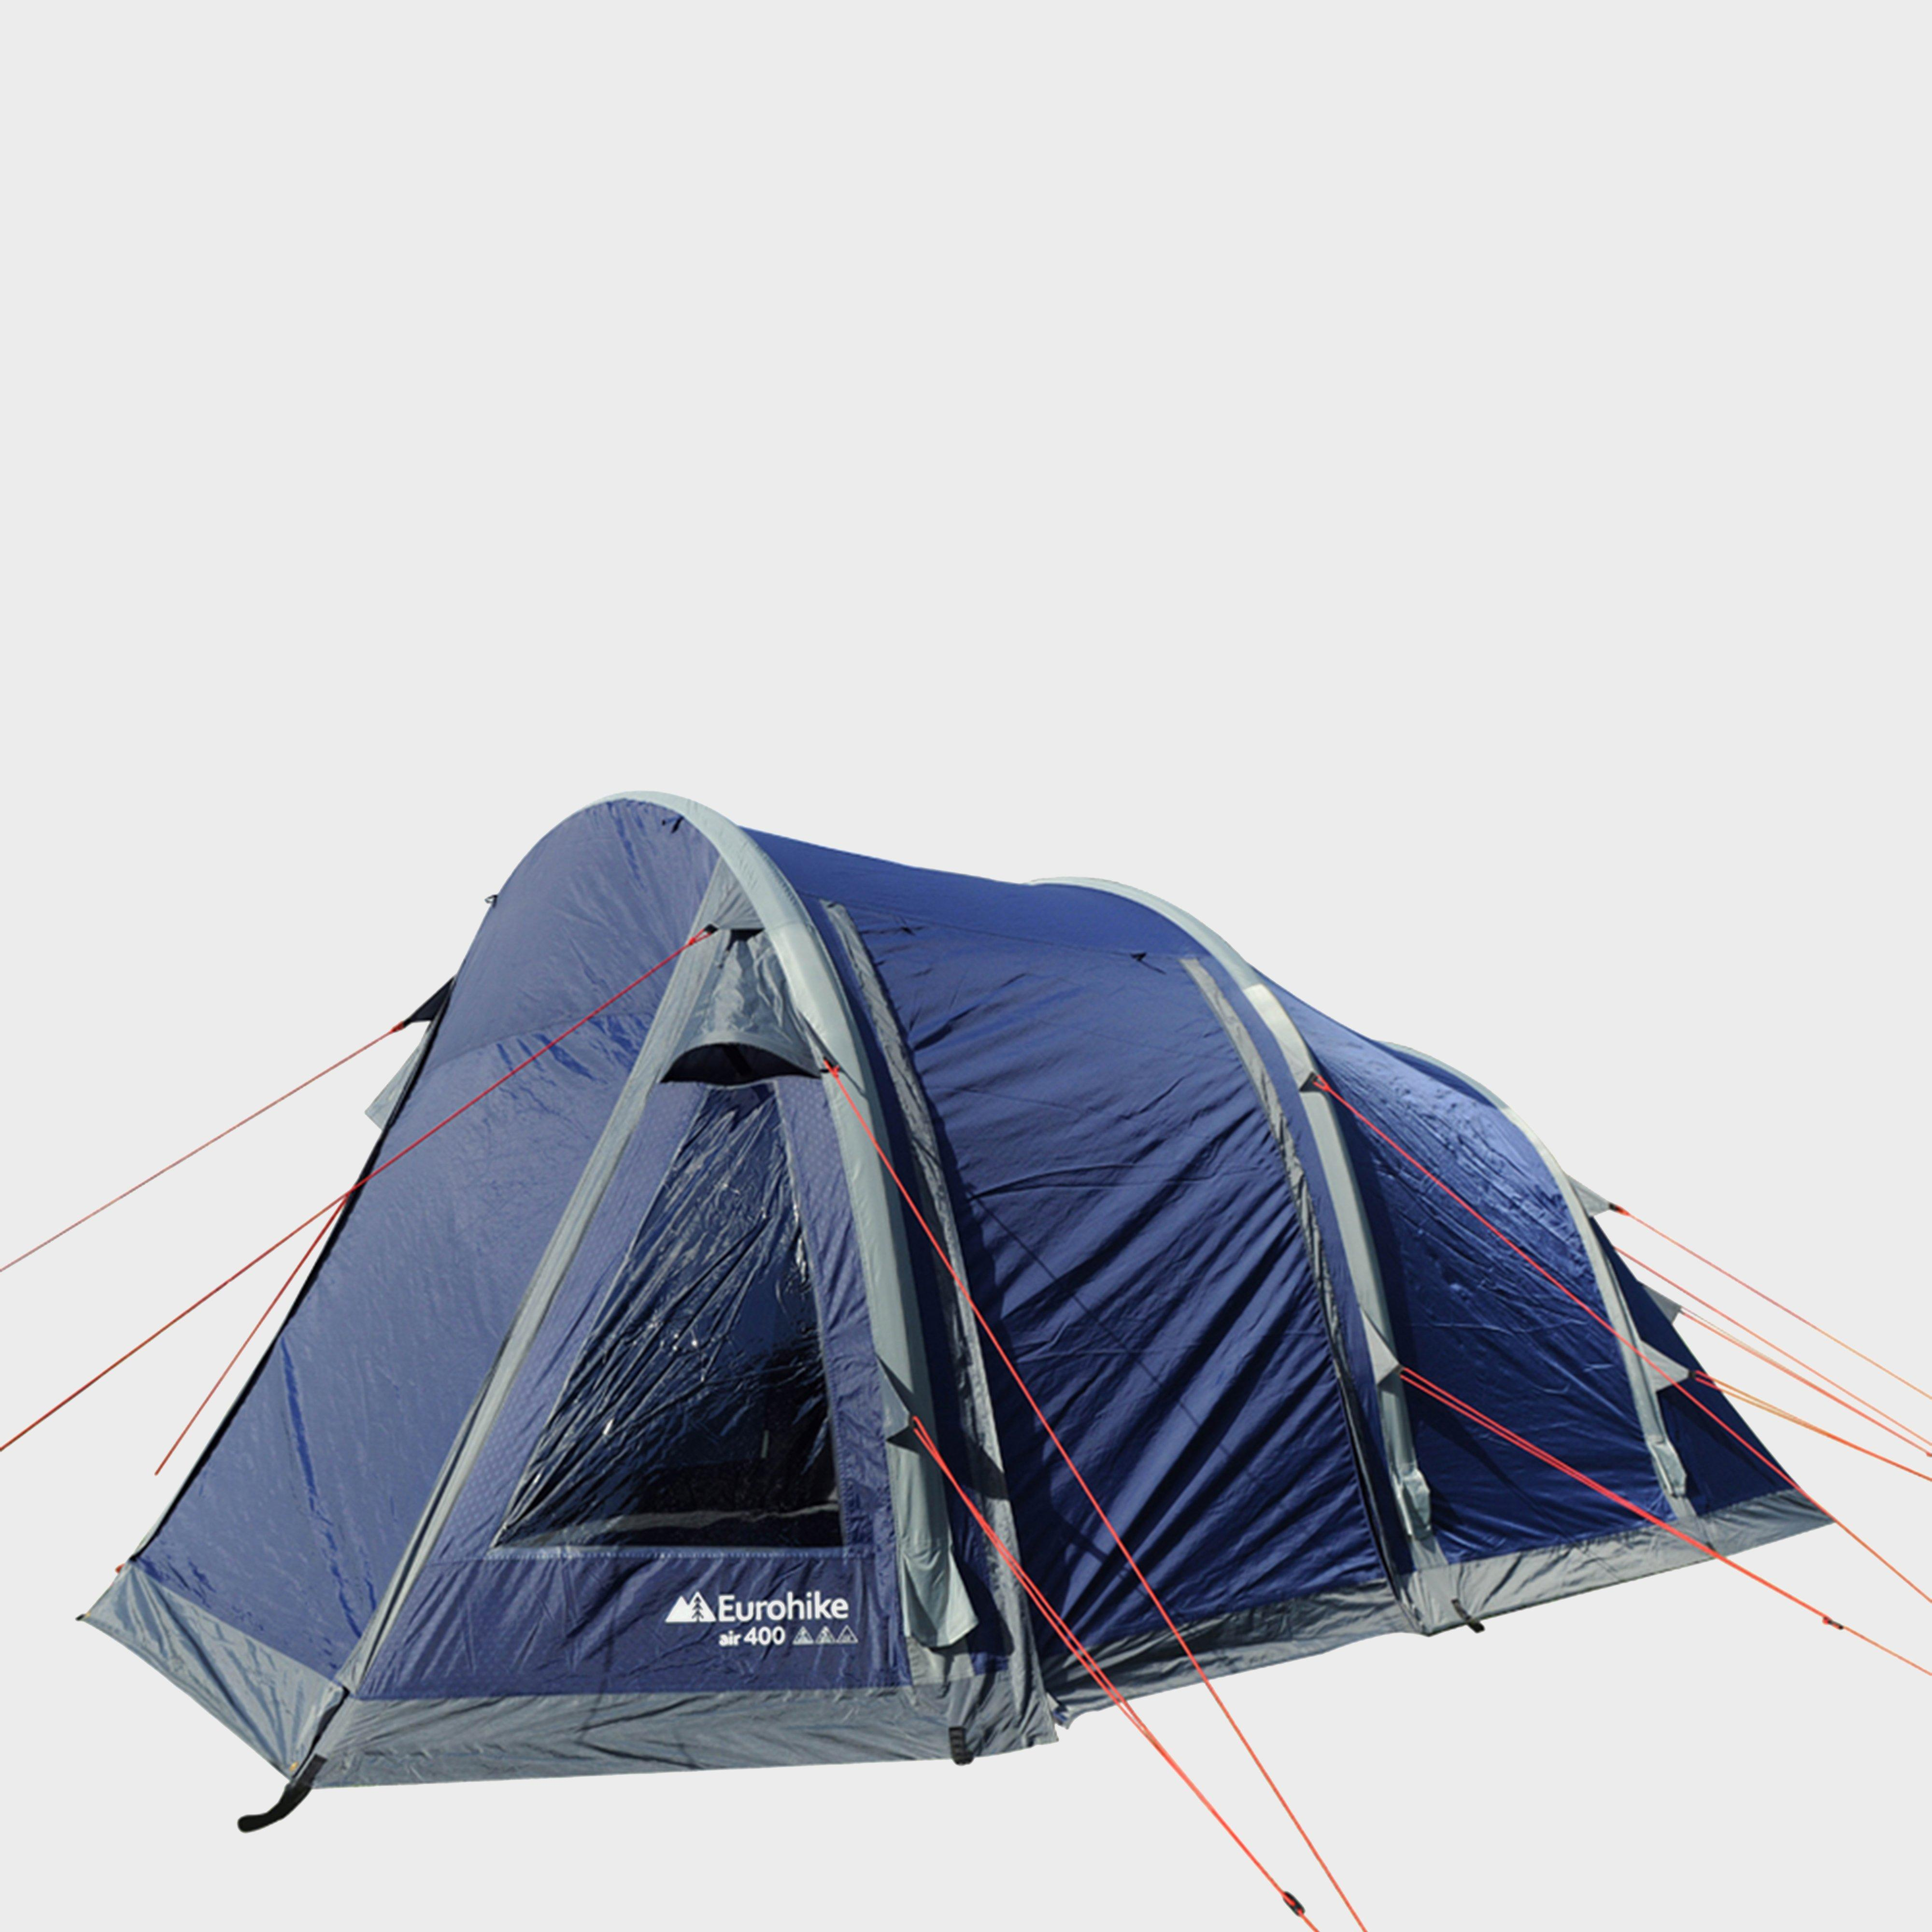 Eurohike Air 400 Inflatable Tent, Blue/NVY